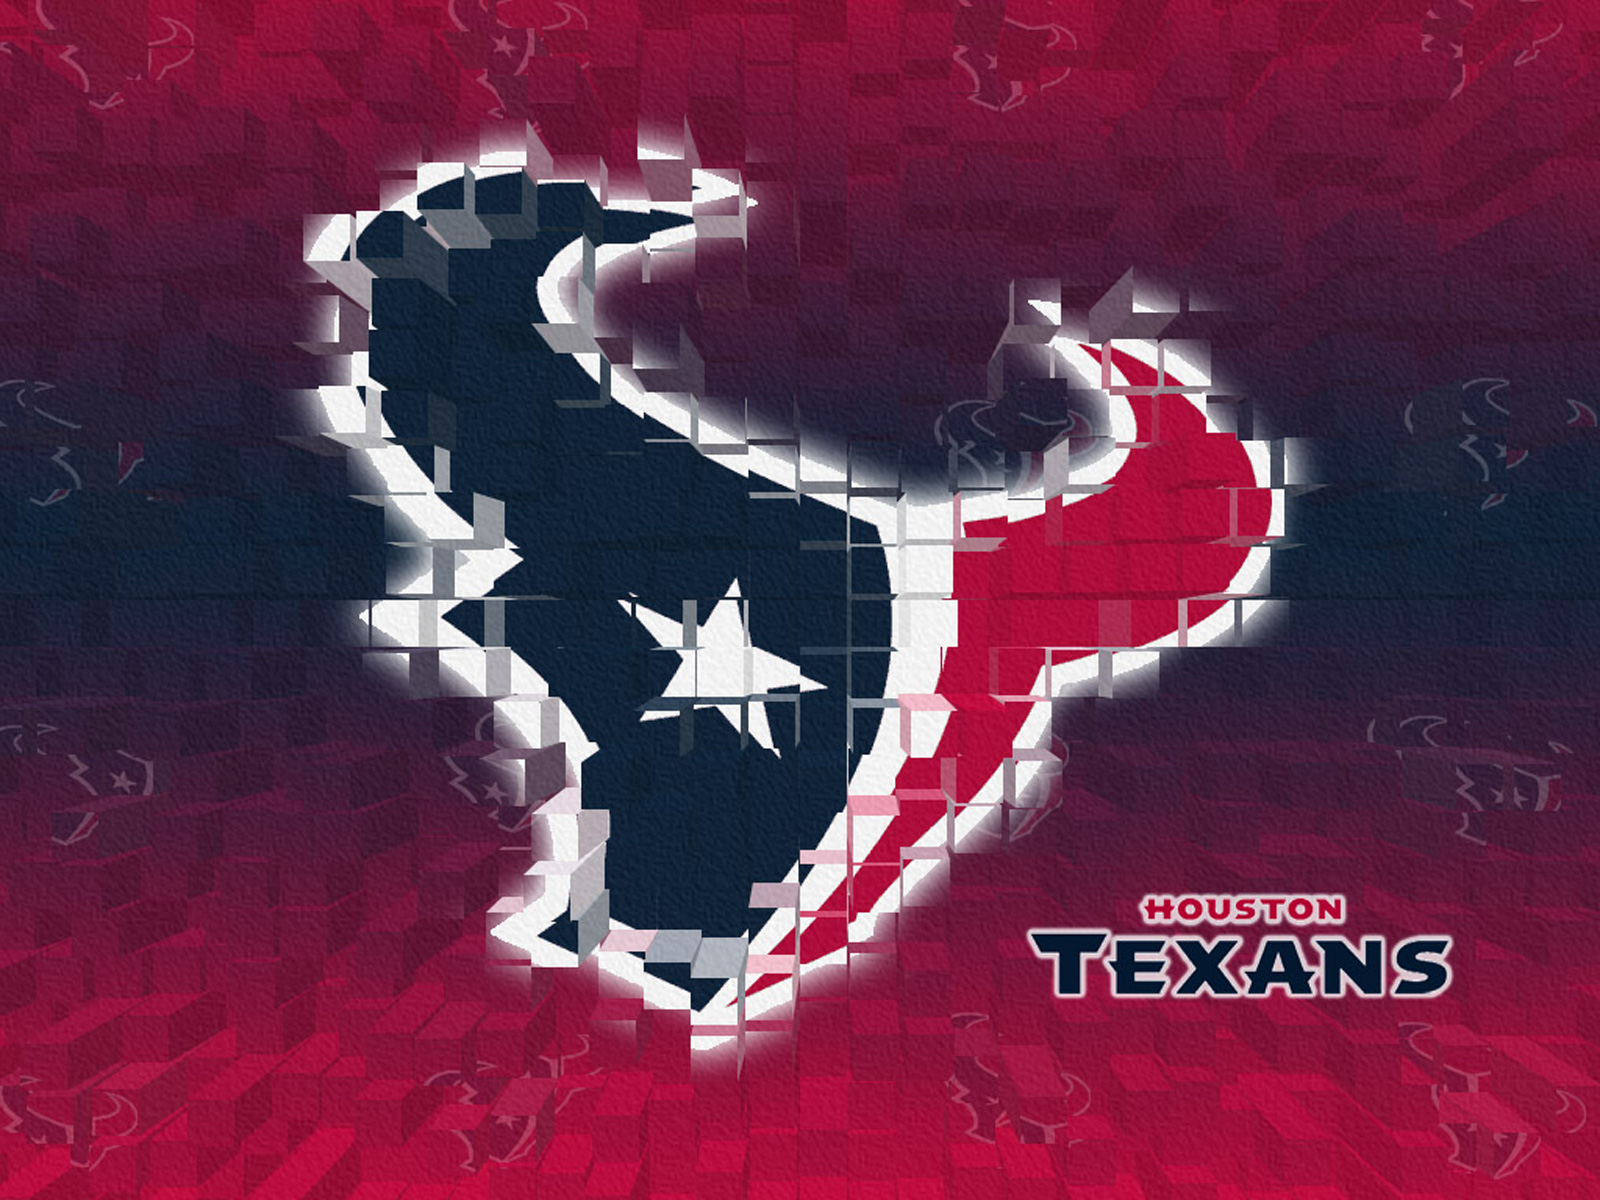 Houston Texans wallpaper Houston Texans logo nfl wallpaper 1600x1200